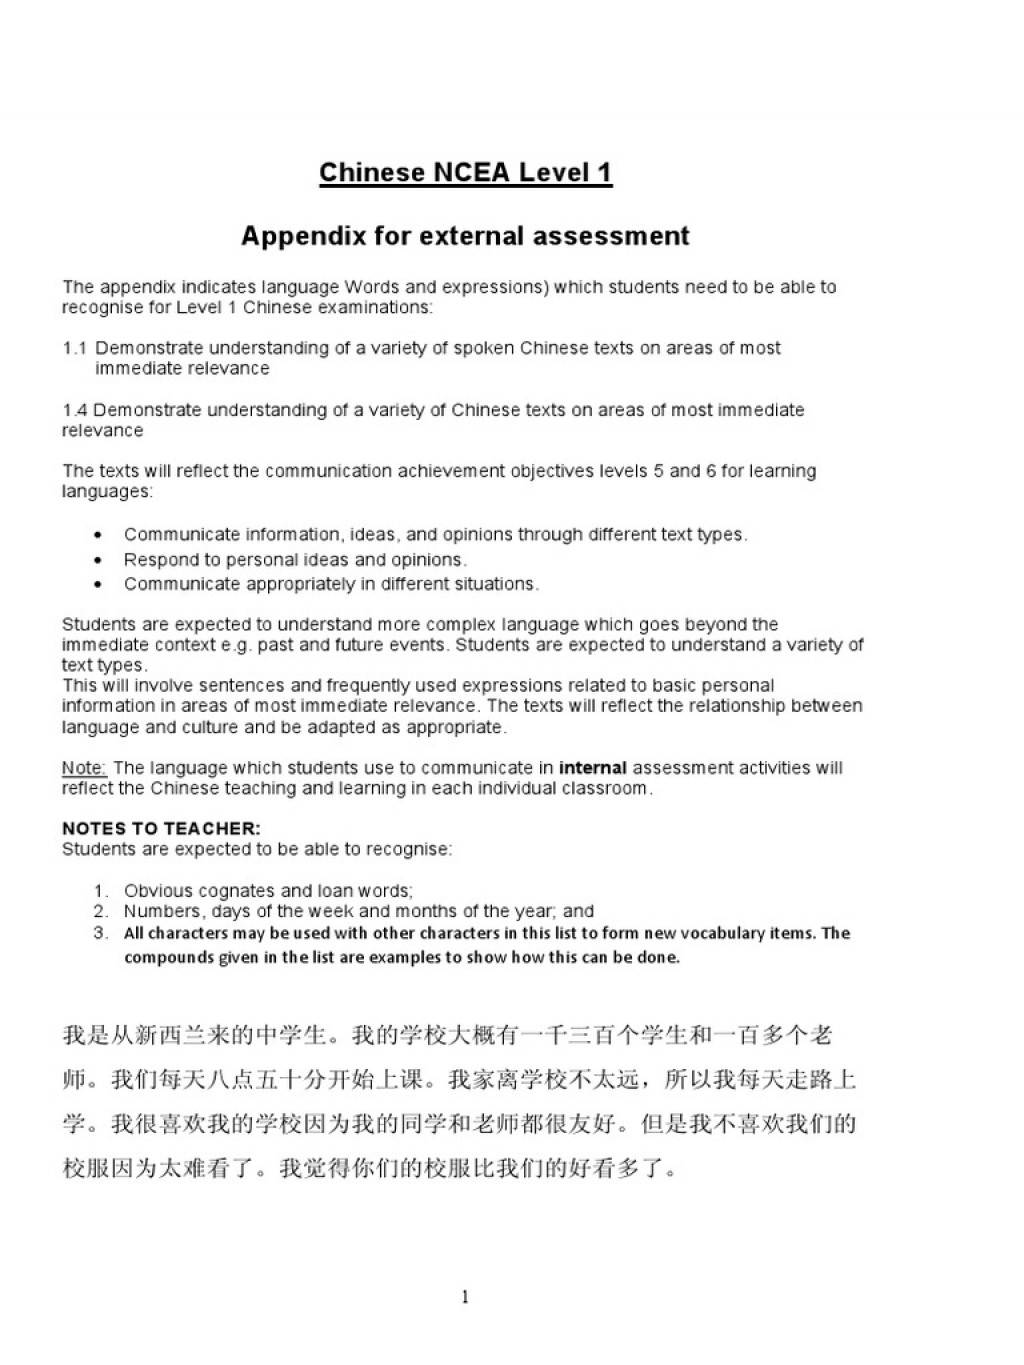 011 Essay Example Chinese Vocab Ncea Level 1 575ee370b6d87ff9888b4638 University Of Washington Remarkable Prompts Bothell Prompt 2017 Large